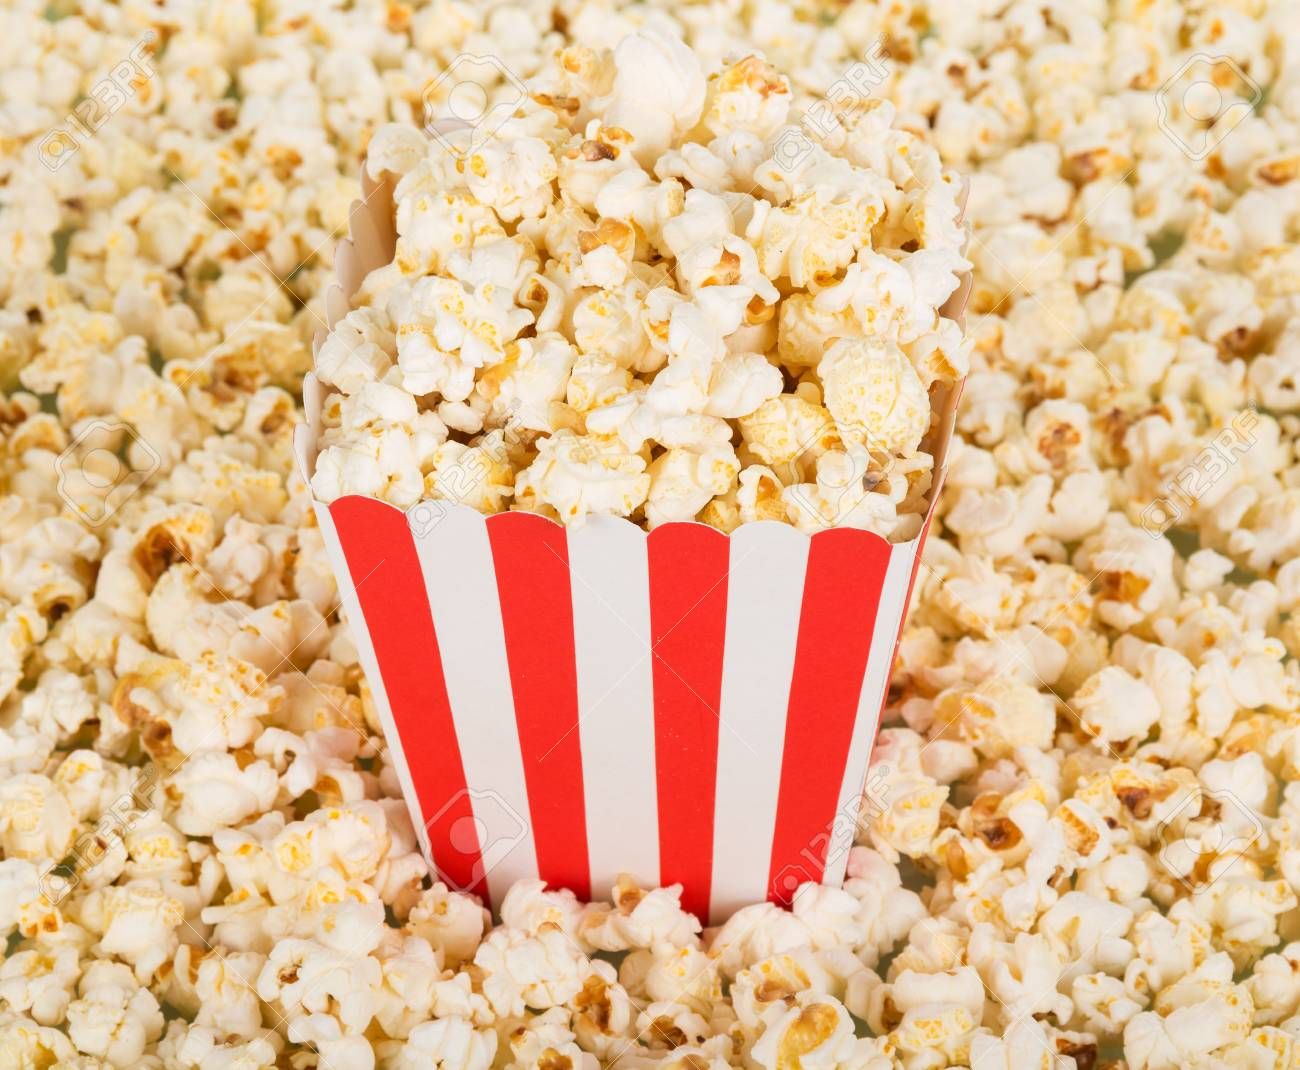 A large square box of popcorn and a lot of popcorn around. Background. Close-up. - 88002218